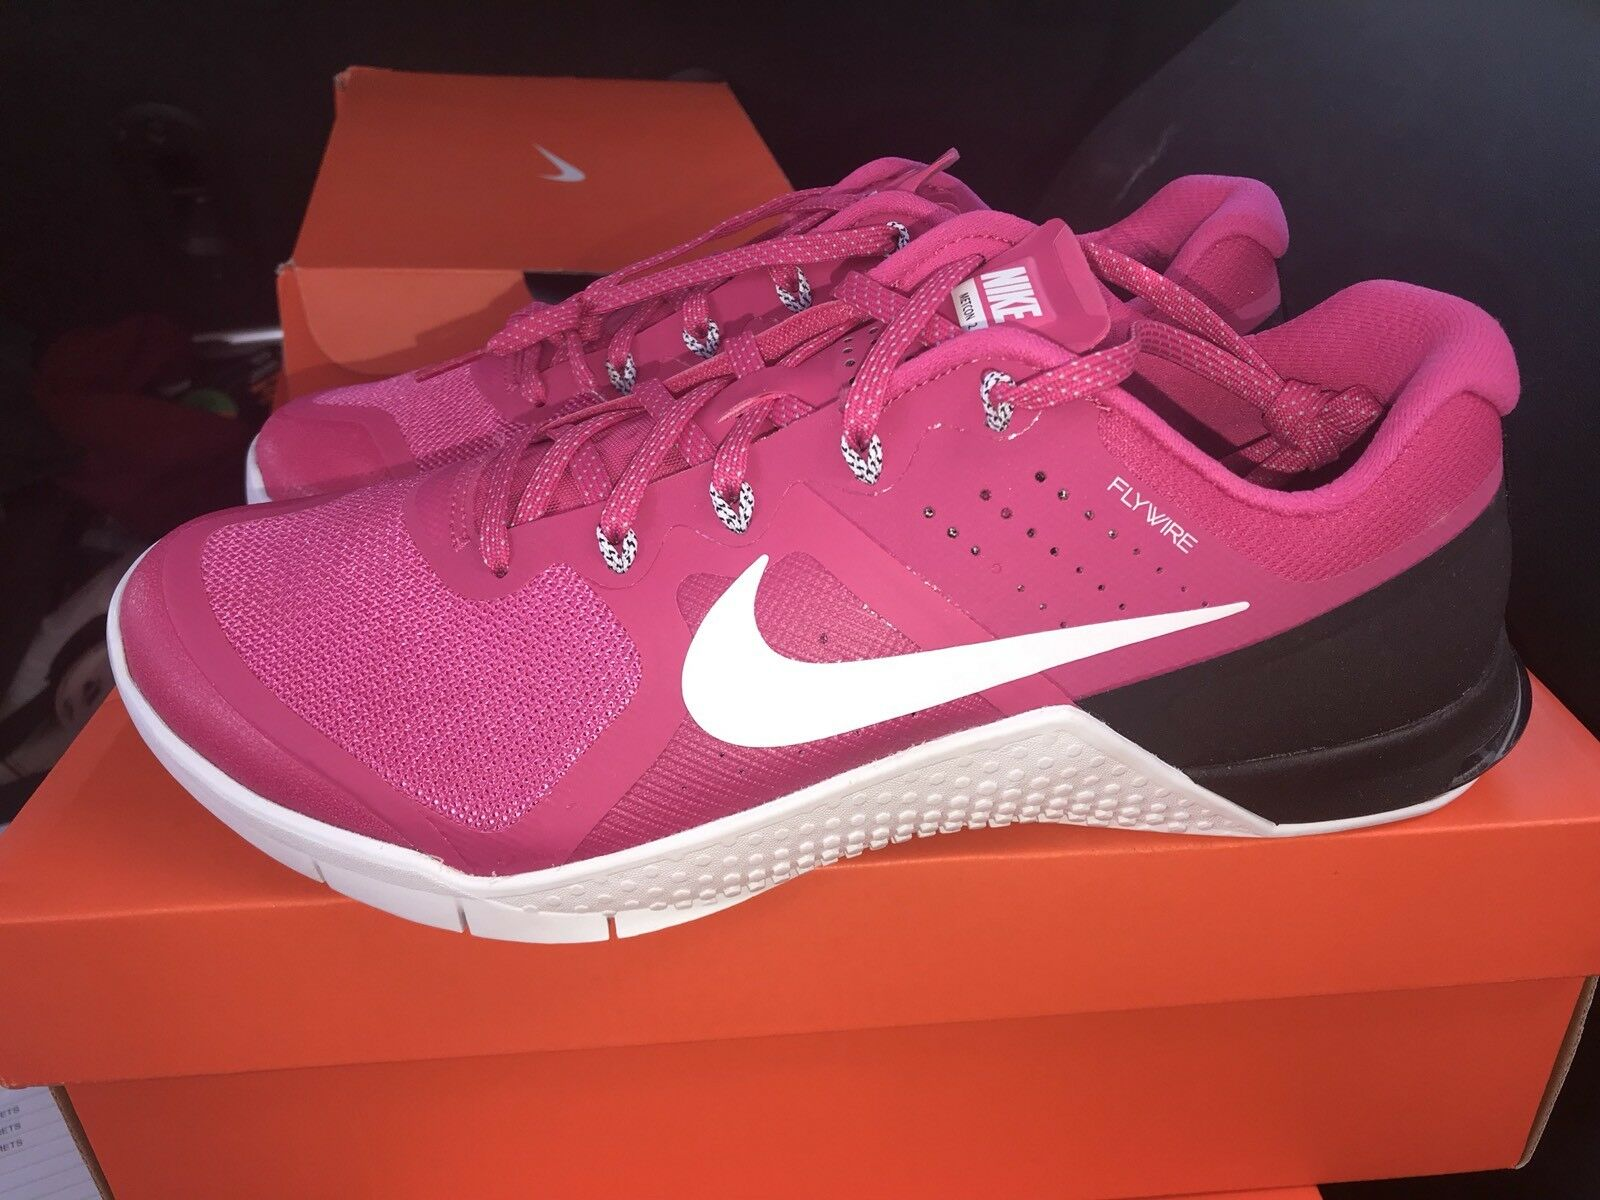 Seasonal price cuts, discount benefits DS Nike Metcon 2 TB Mens Pink Running Training Shoes Comfortable